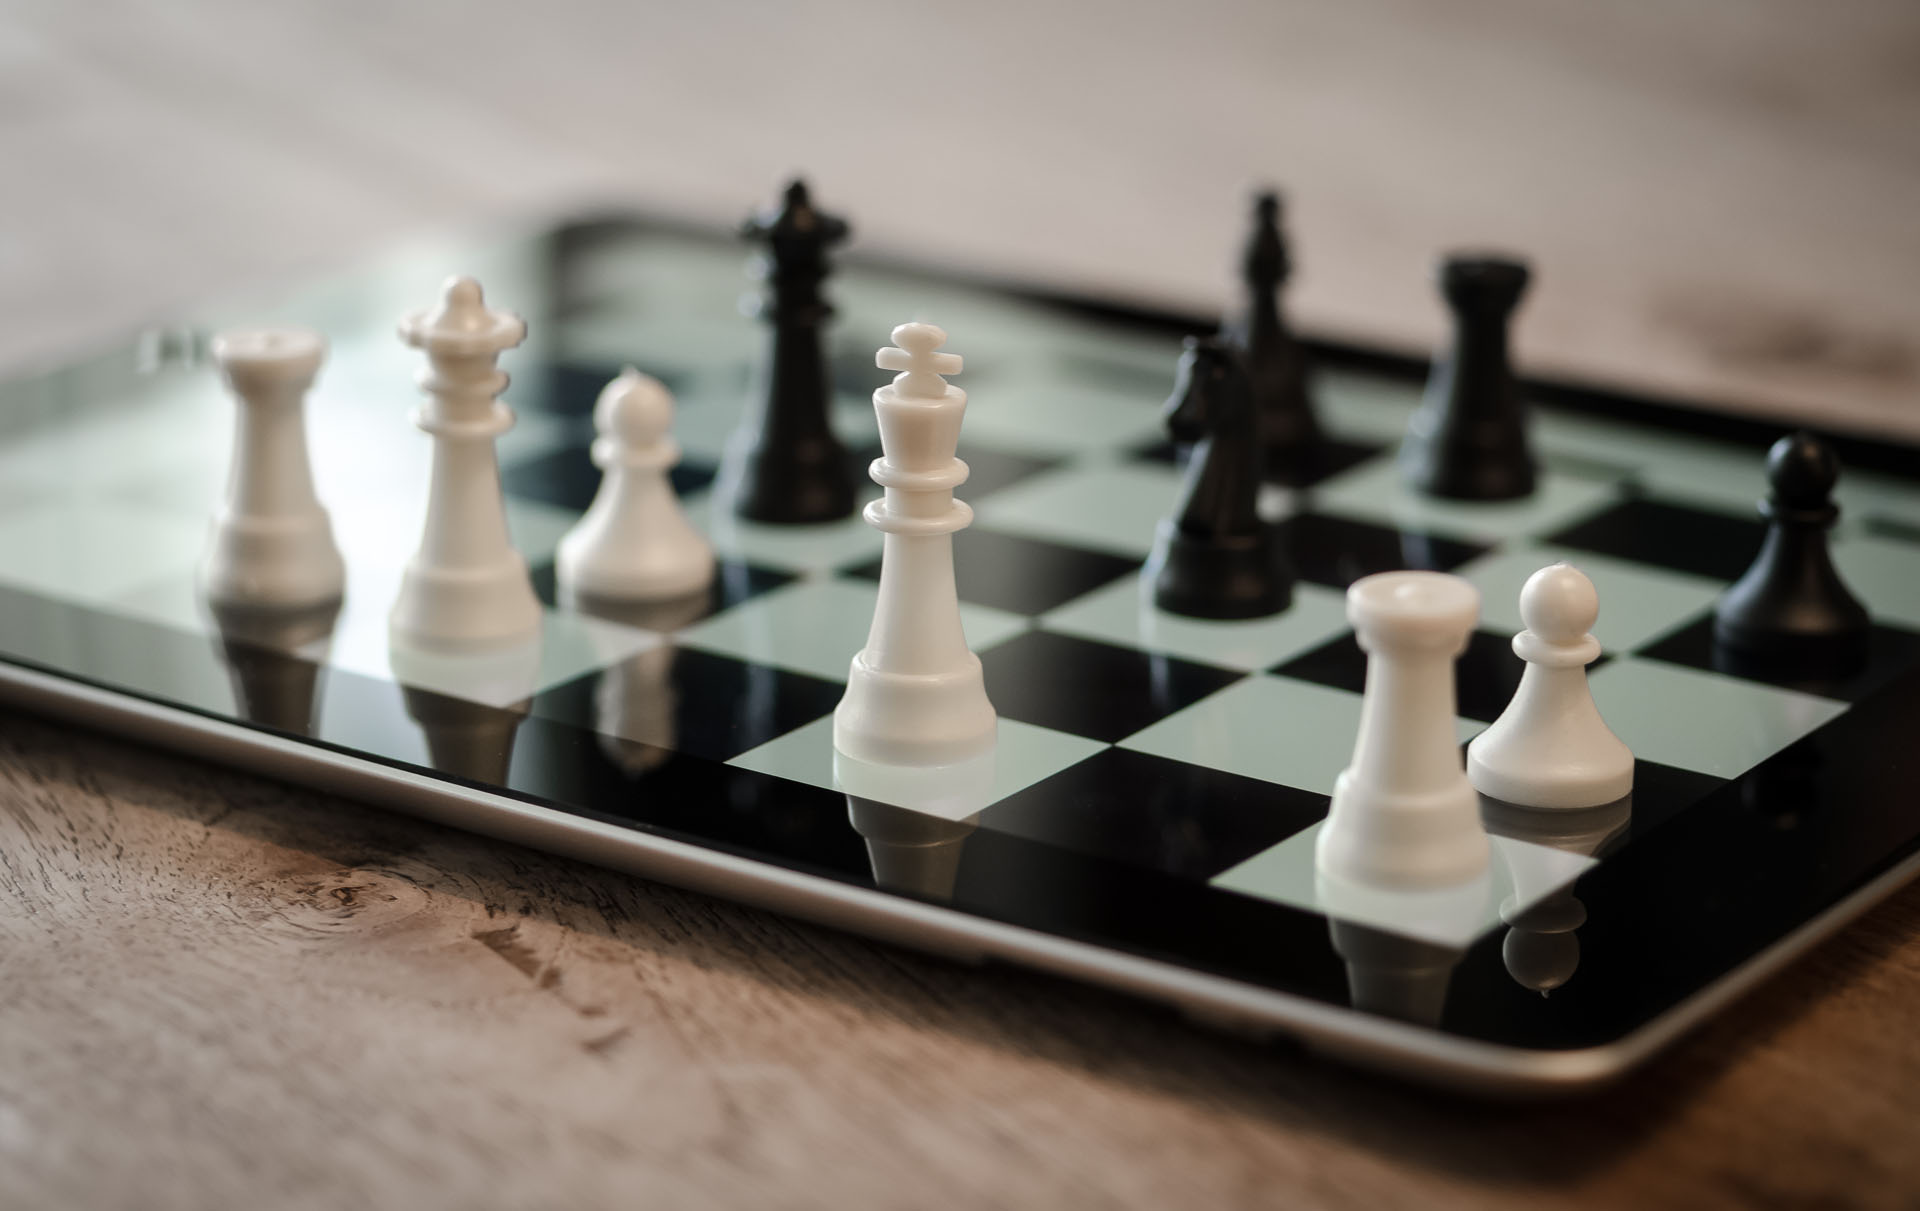 Photo of black and white chess pieces on a chess board.